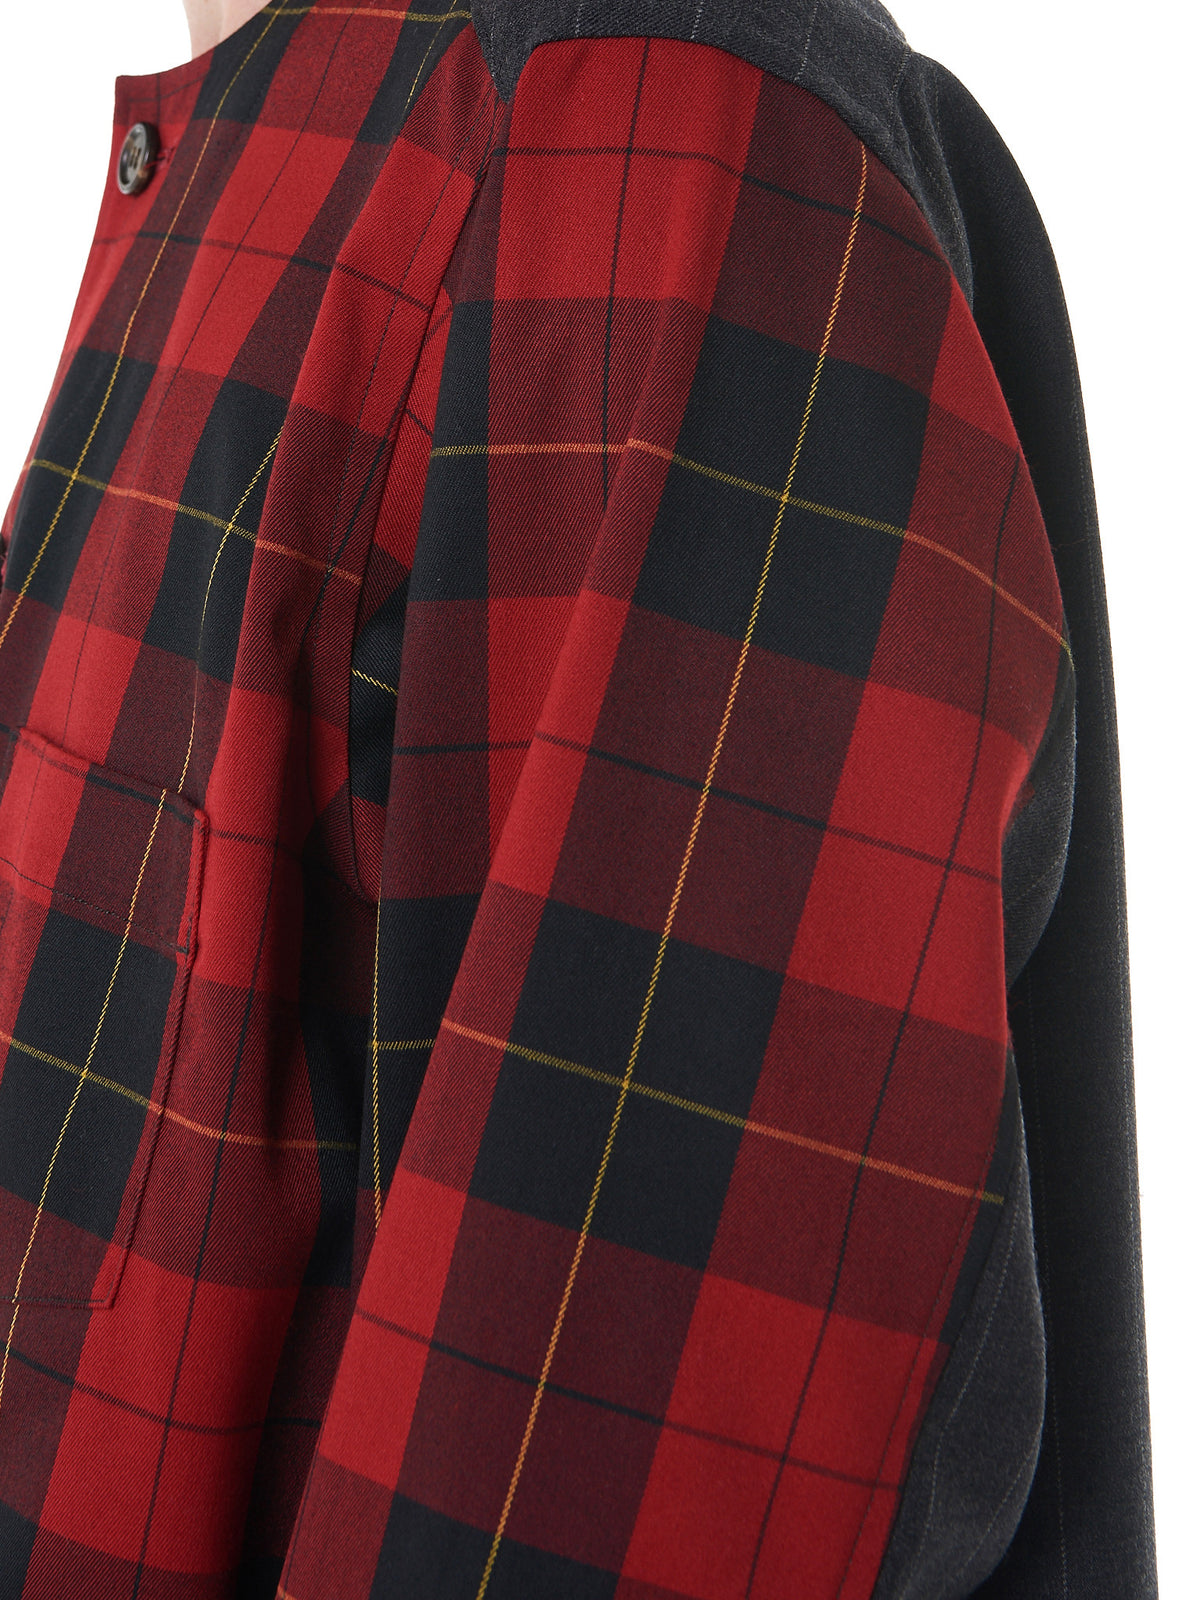 Checkered Button-Down (17TMJ12003-RED-CHARCOAL) - H. Lorenzo